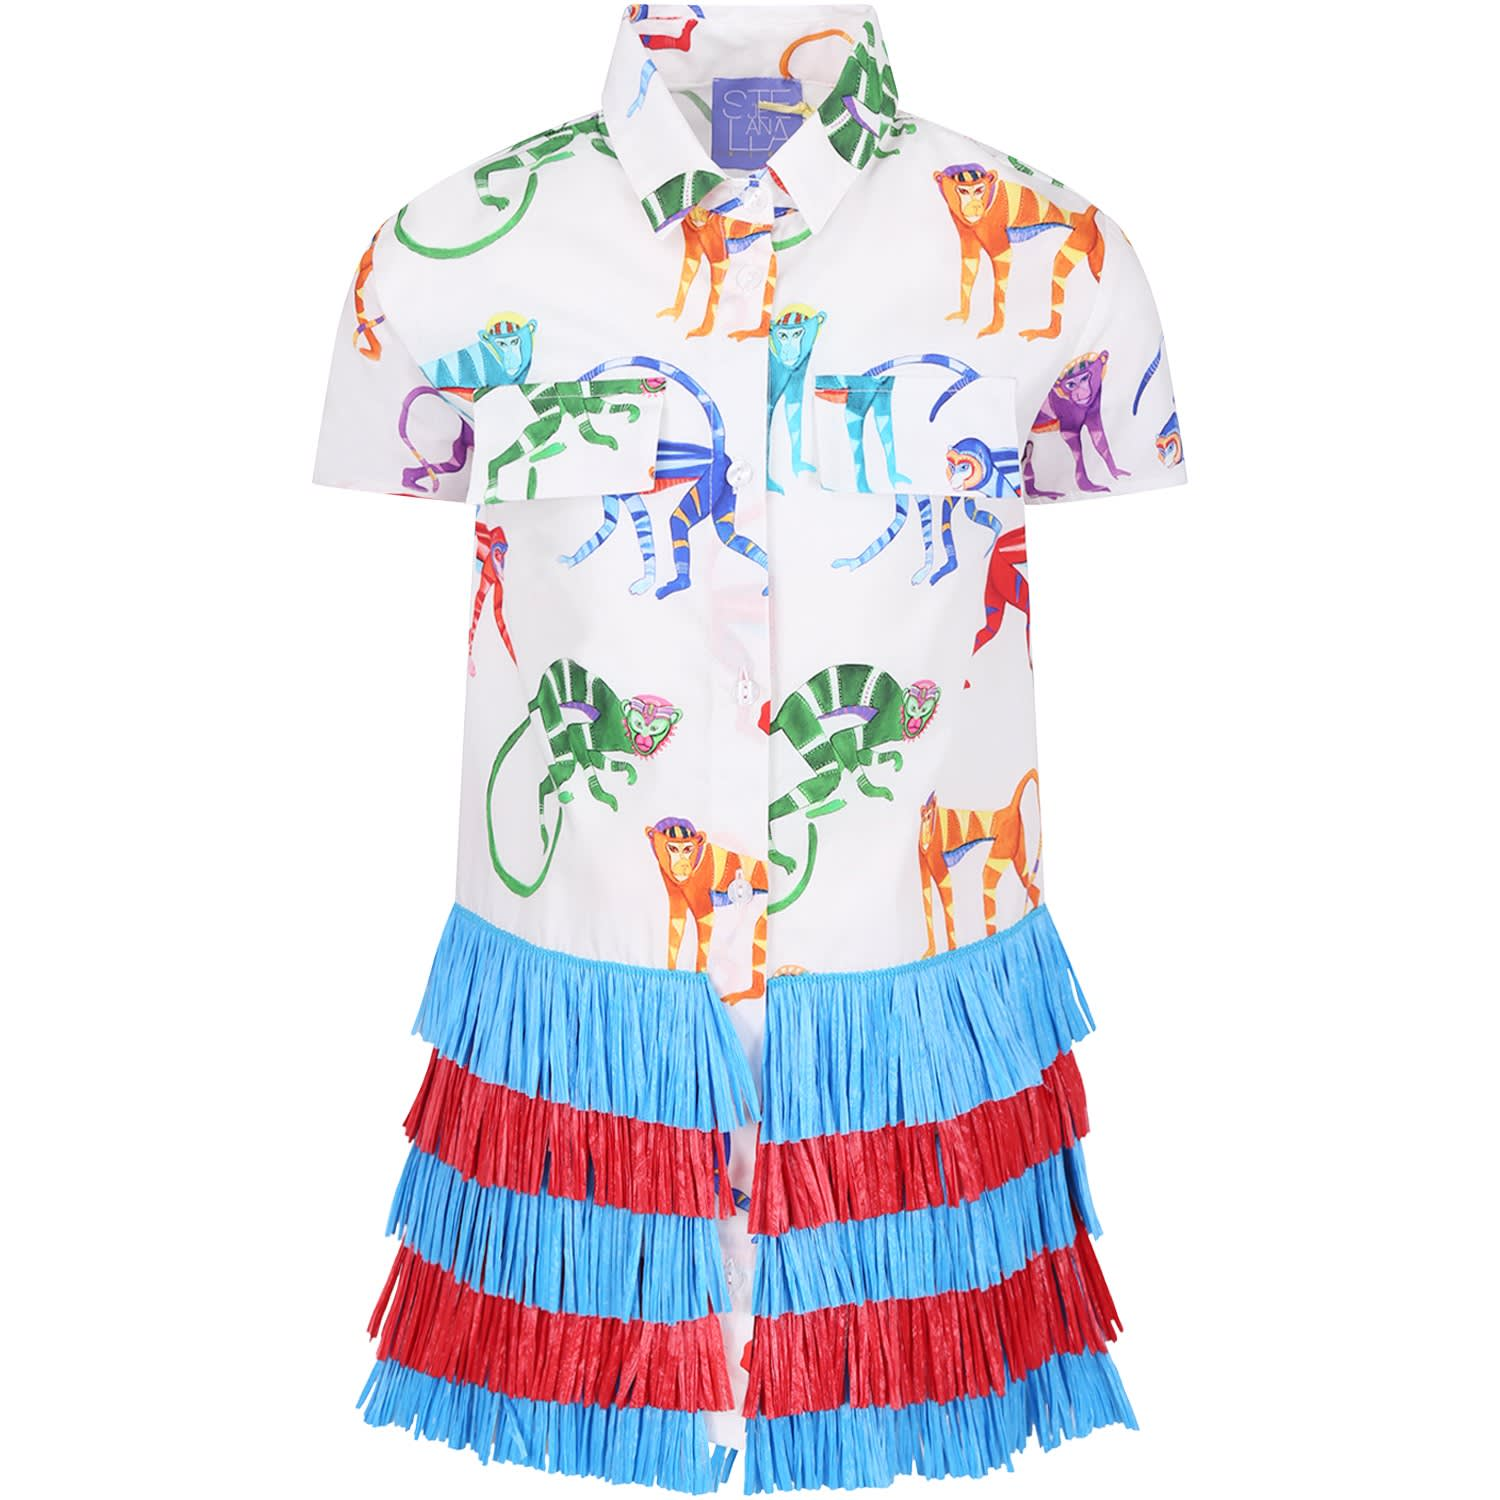 Buy Stella Jean White Girl Dress With Colorful Monkeys online, shop Stella Jean with free shipping